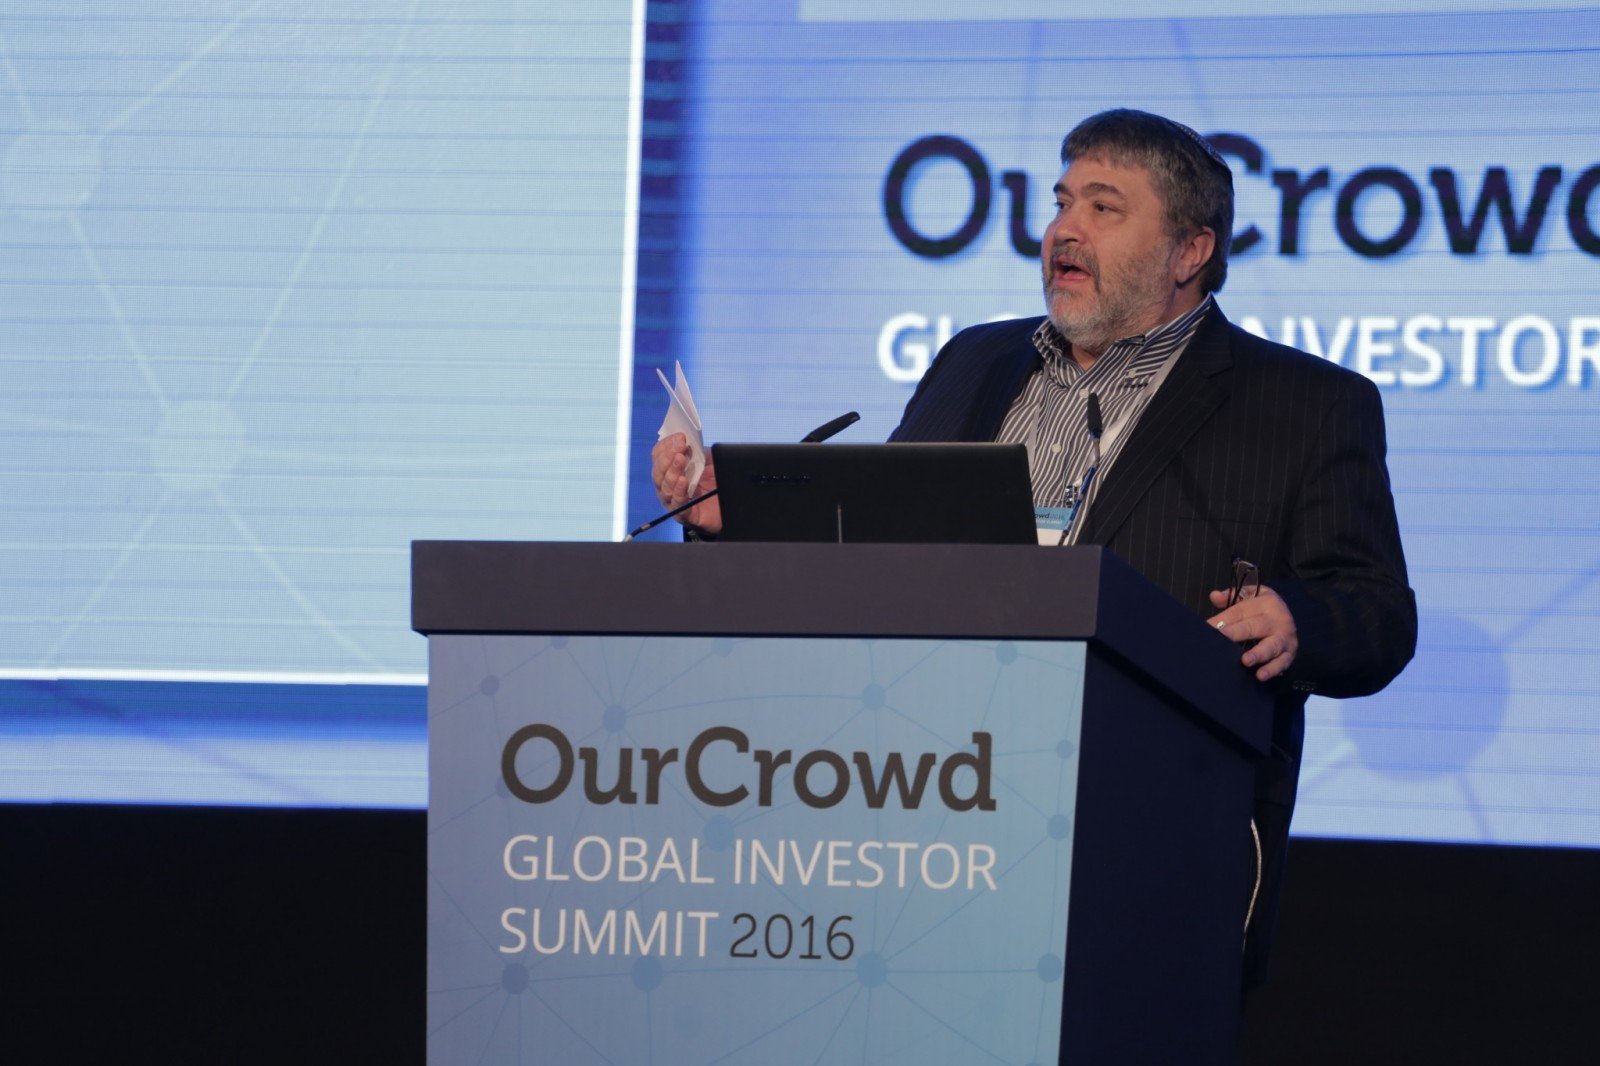 OurCrowd CEO Jon Medved speaking at the 2016 OurCrowd Global Investor Summit in Jerusalem. Photo courtesy